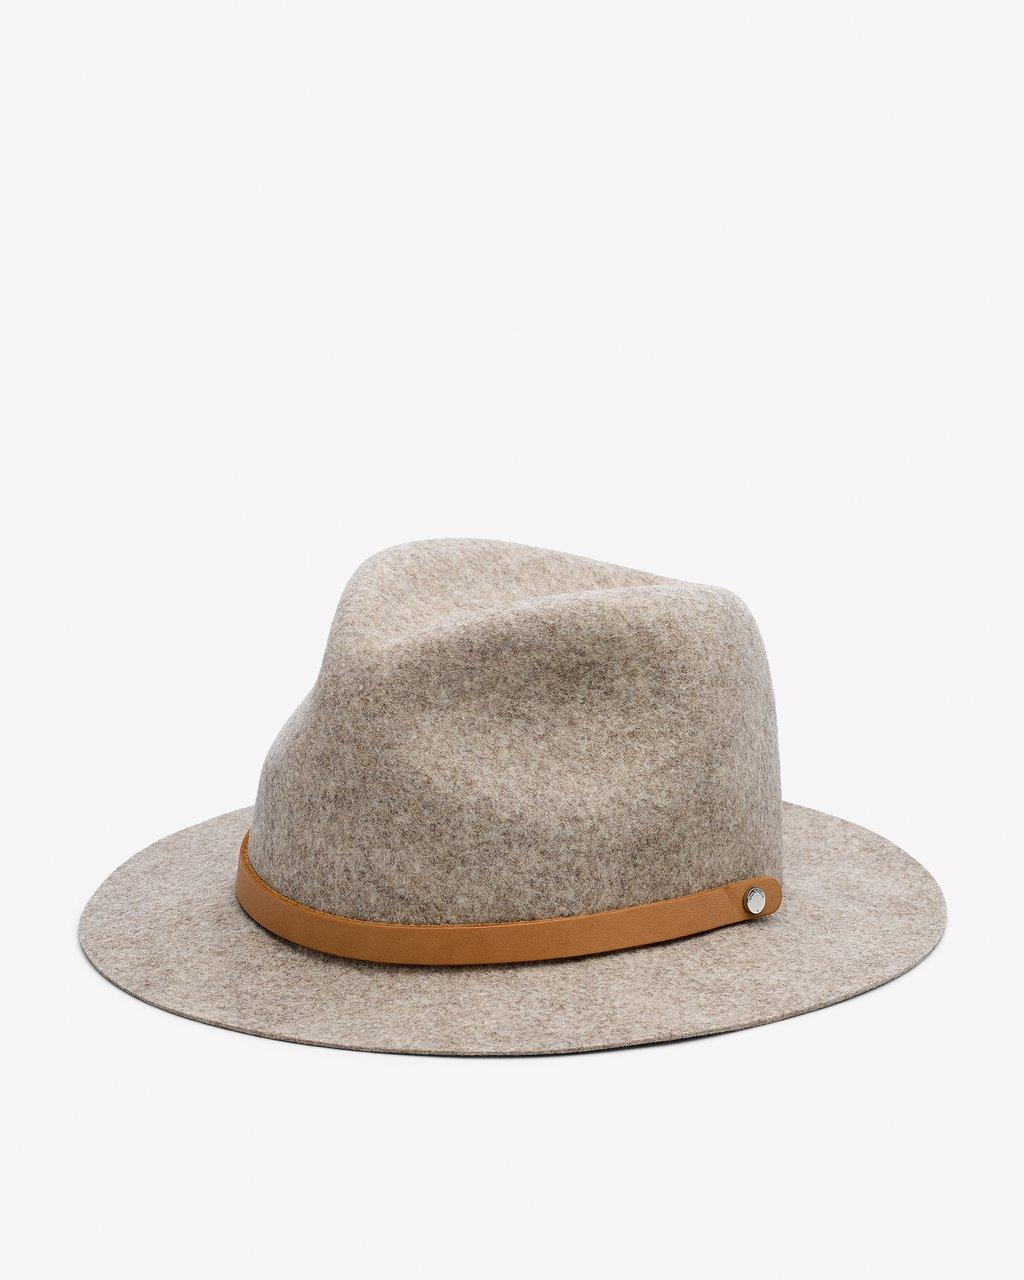 PACKABLE ABBOTT FEDORA